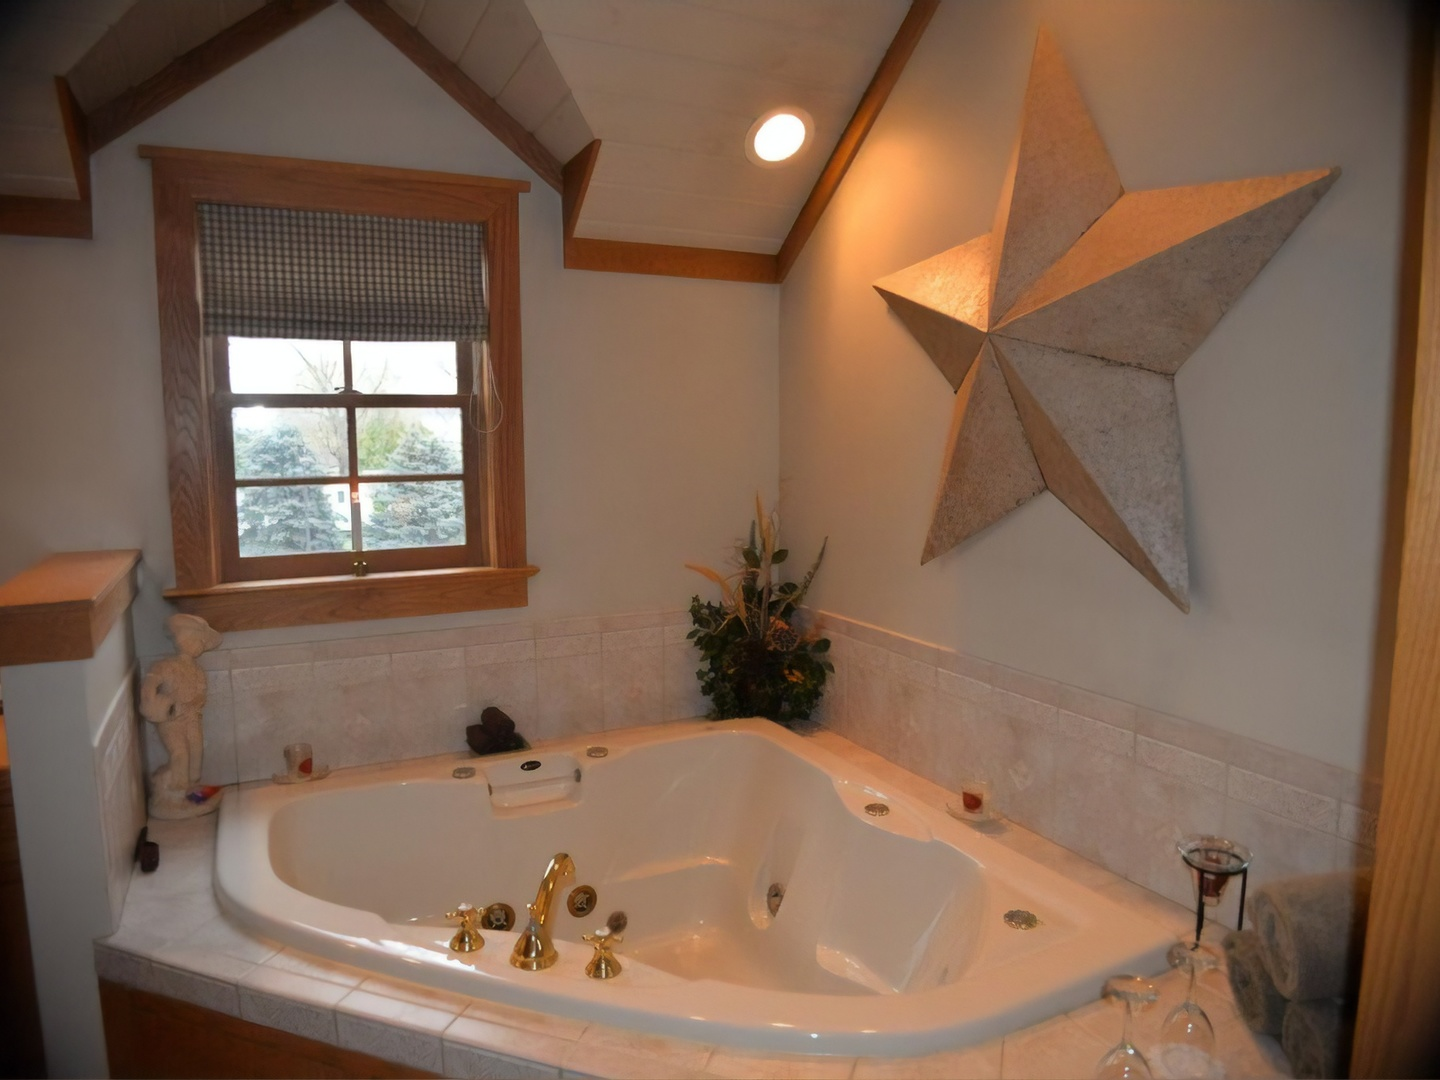 A large white tub sitting next to a sink at The Inn & Spa at Intercourse Village.